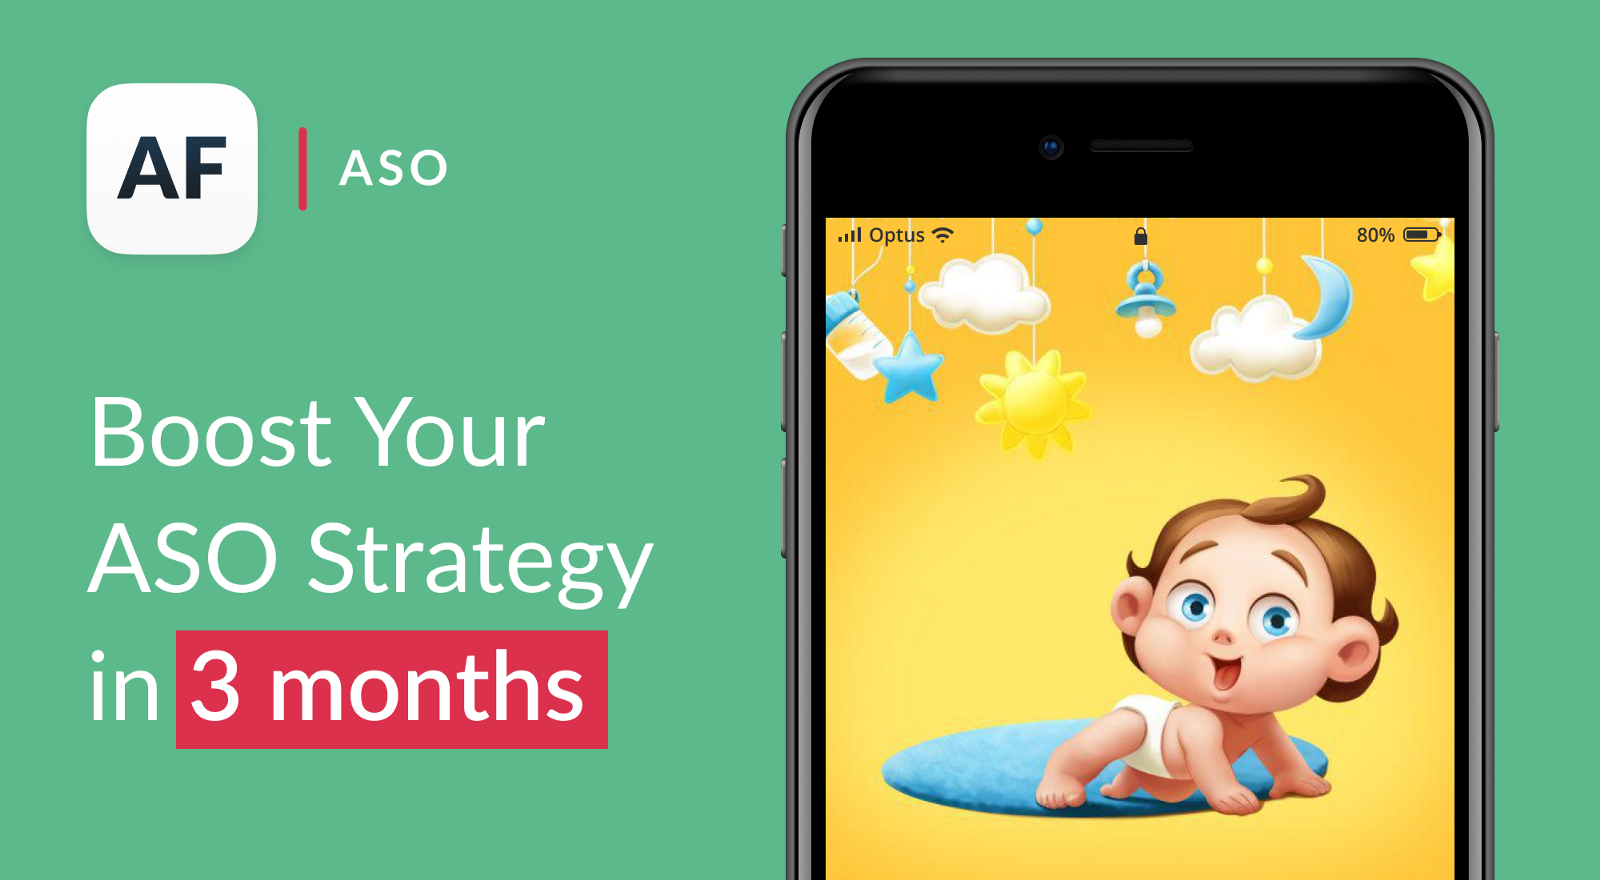 ASO Guide for Beginners: Boost Your ASO Strategy in 3 Months